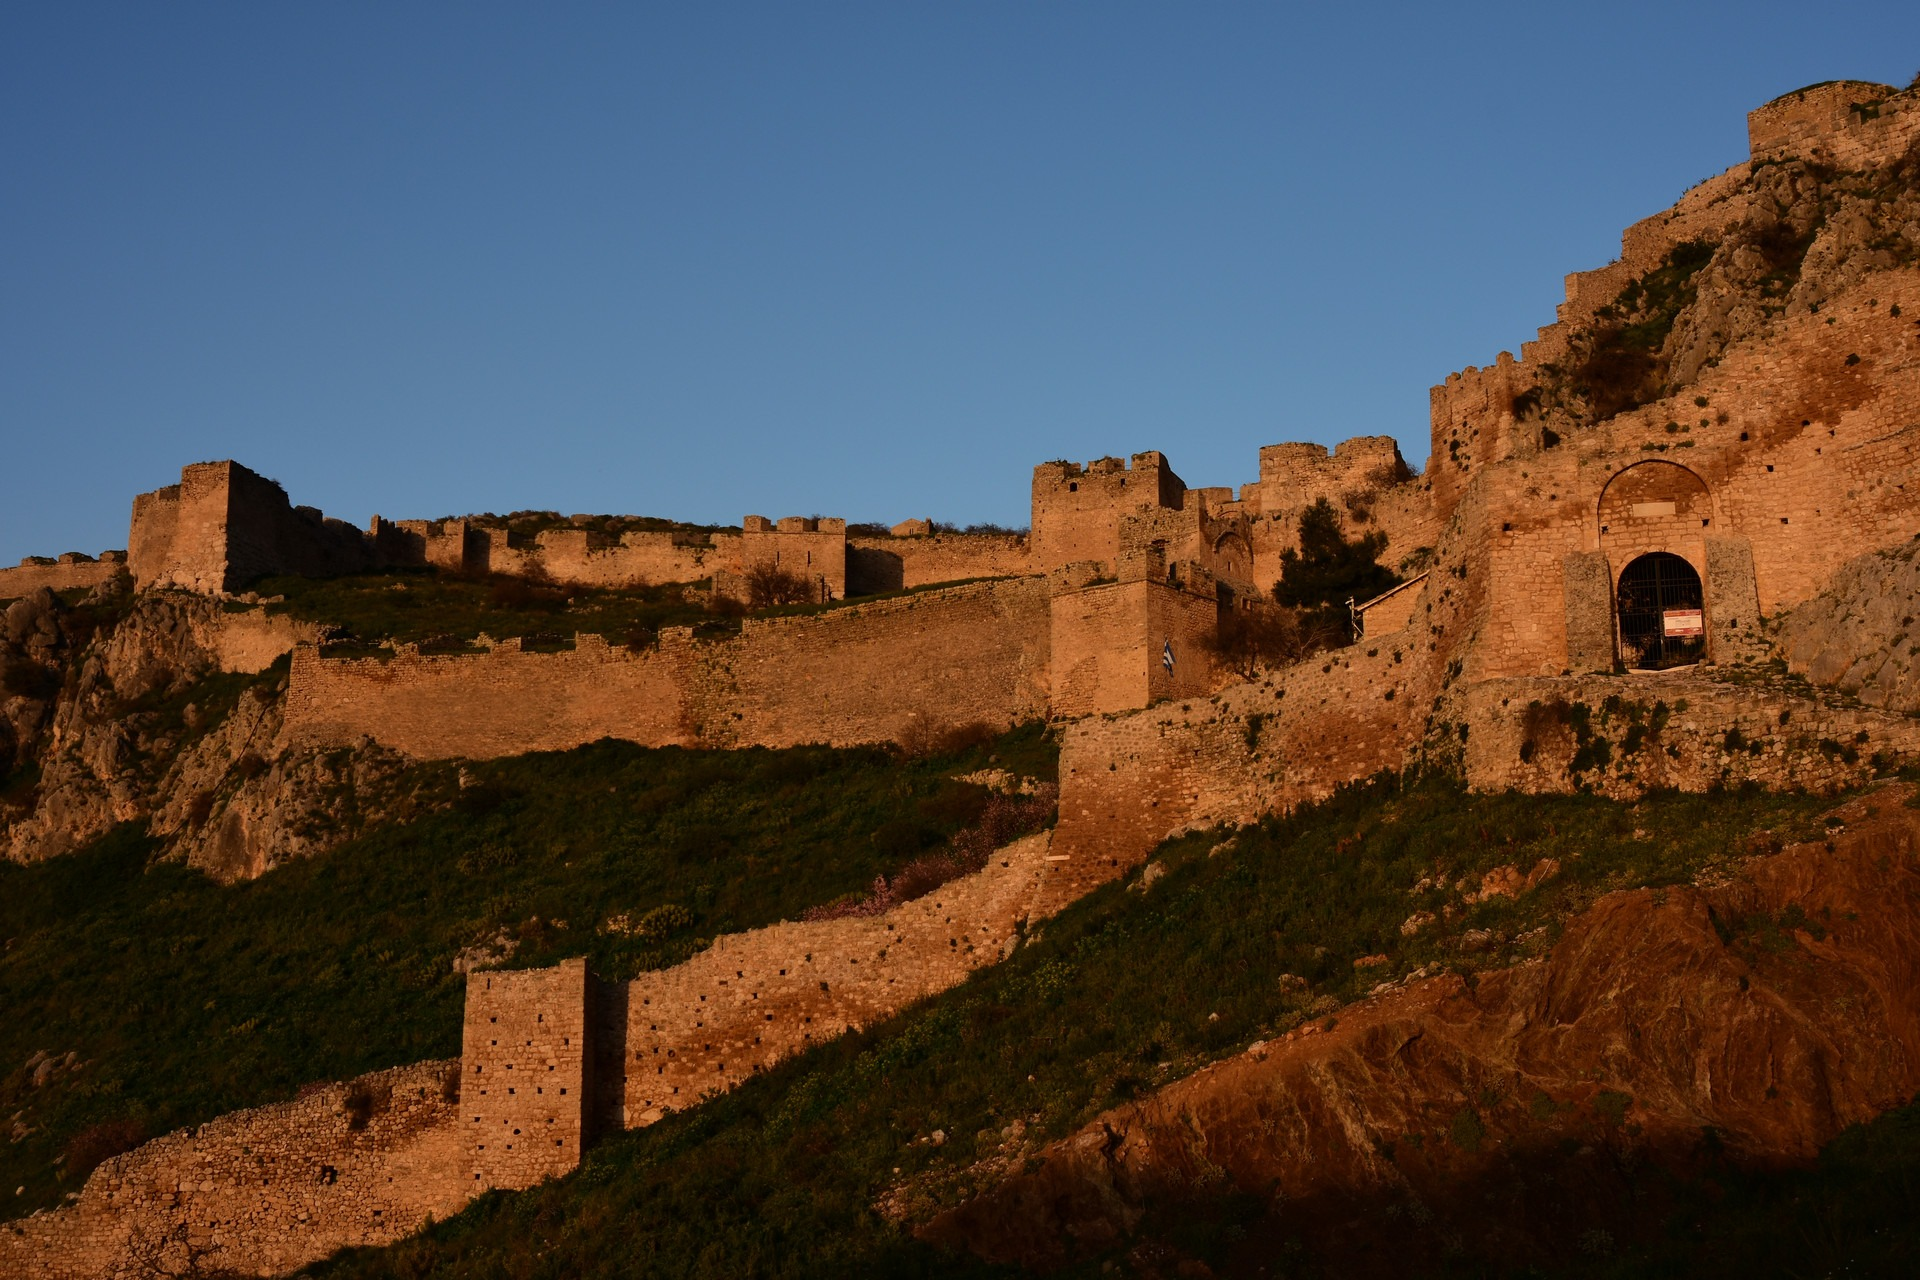 Kiato and Acrocorinth